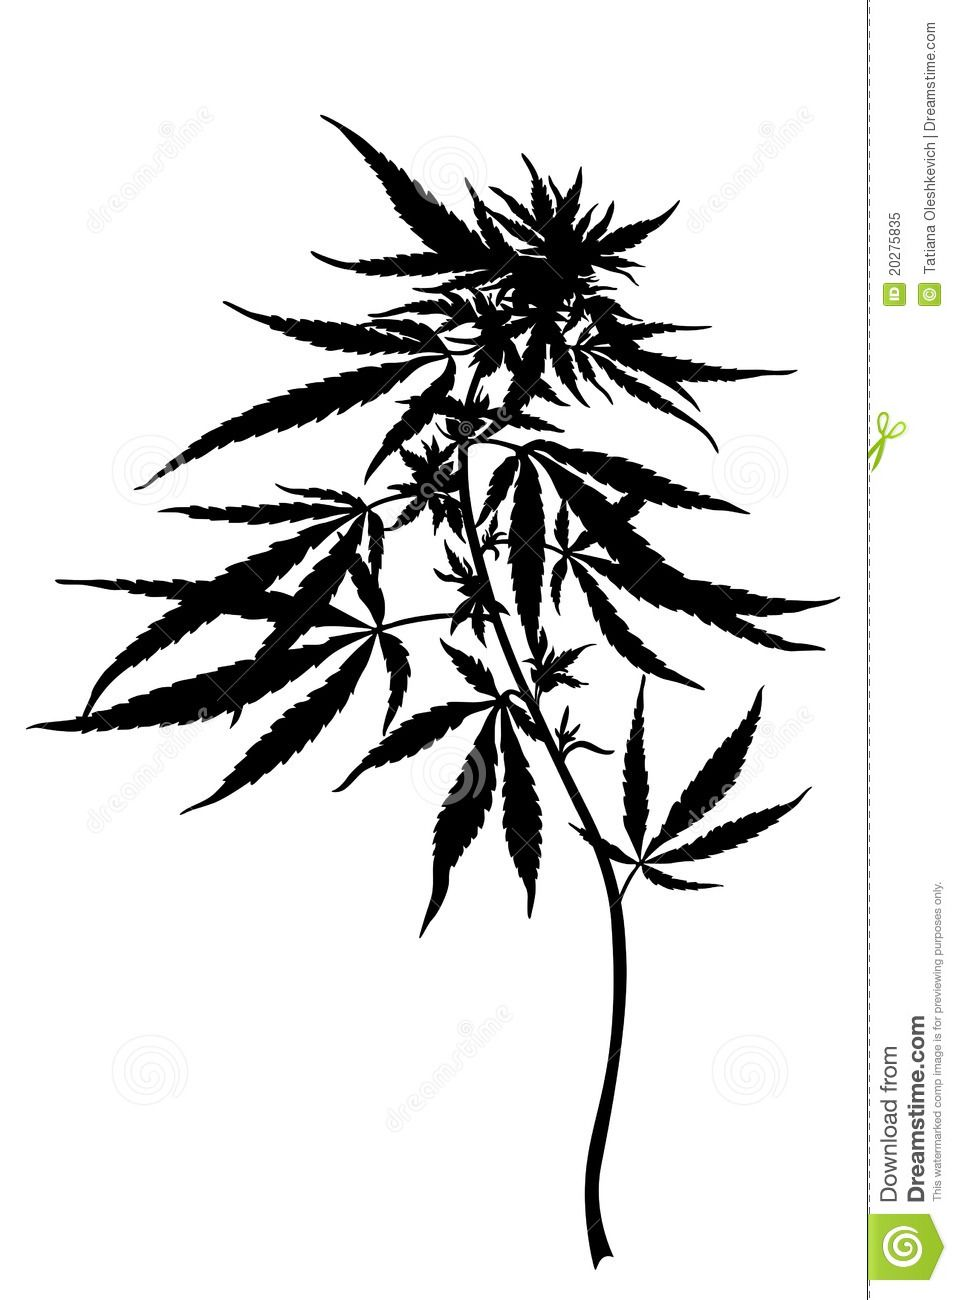 Cannabis Sativa Plant - Download From Over 38 Million High Quality Stock Photos…